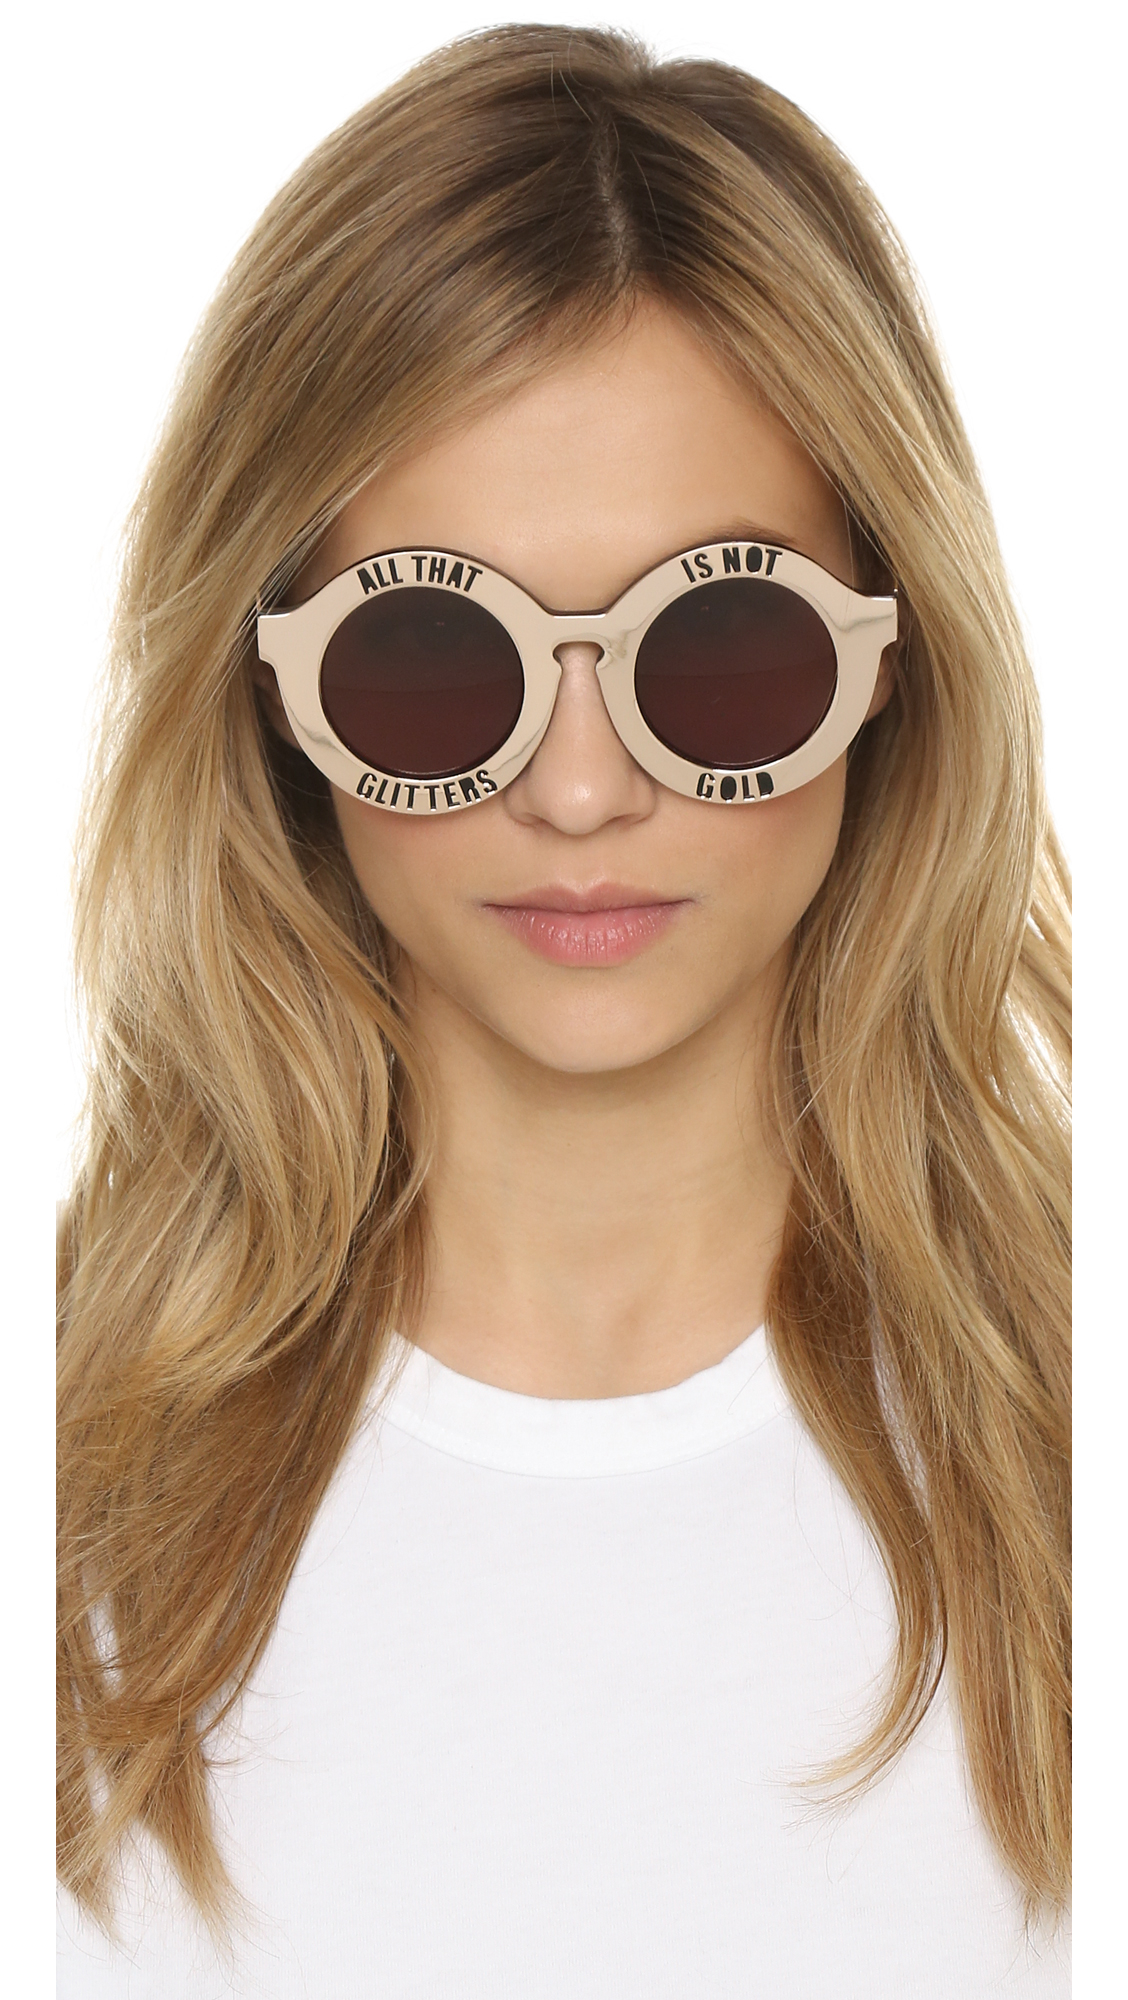 ac1e664fd438 Lyst - House of Holland On A Metal Sunglasses in Pink